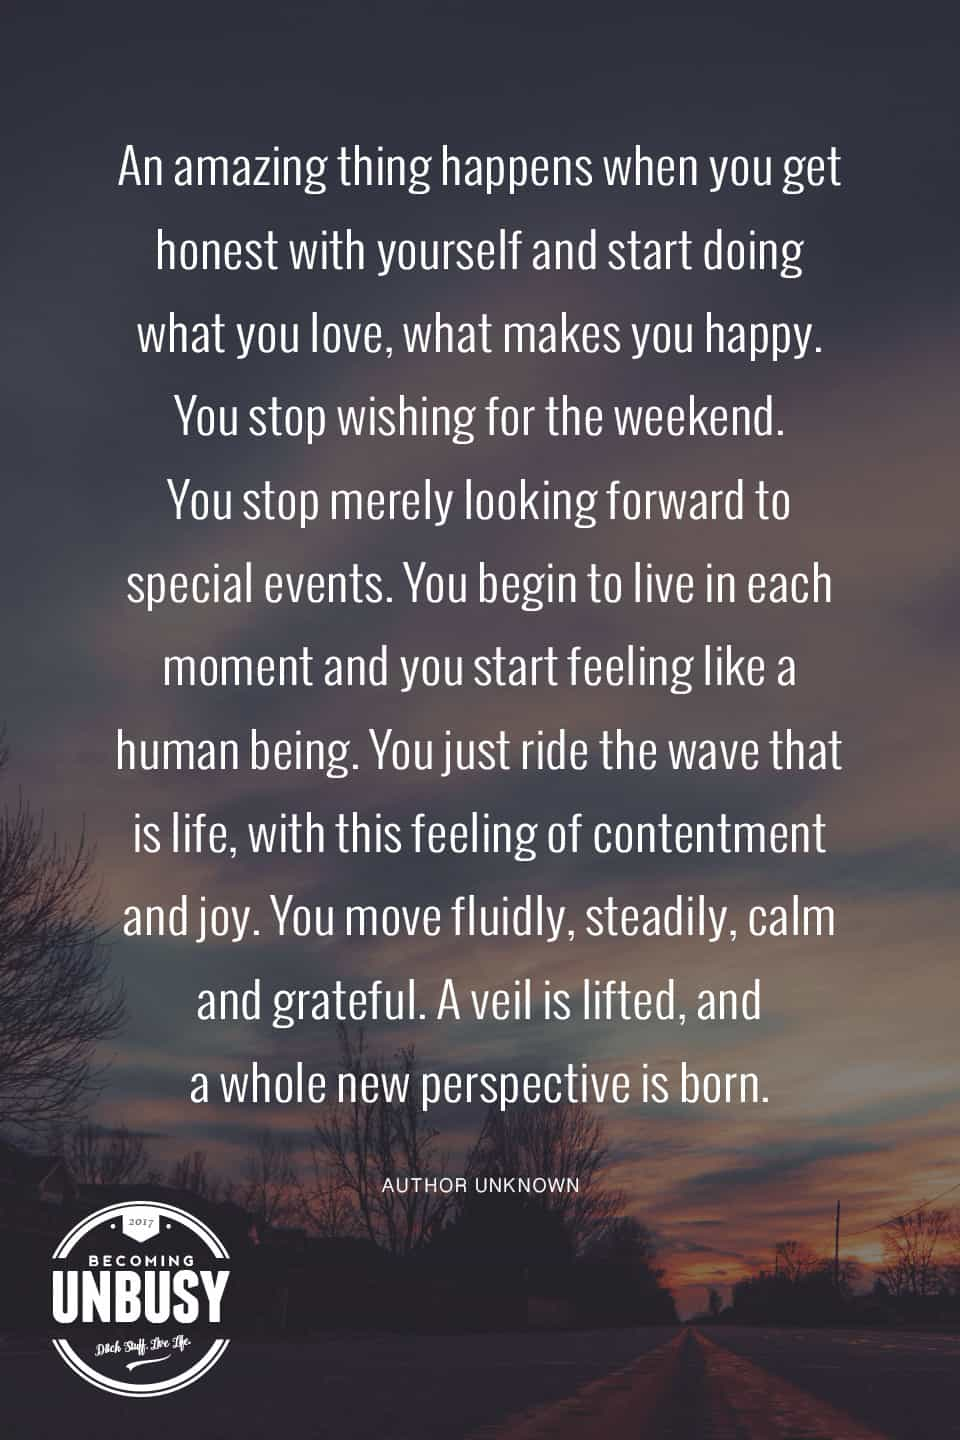 An amazing thing happens when you get honest with yourself and start doing what you love, what makes you happy. You stop wishing for the weekend. You begin to live in each moment.